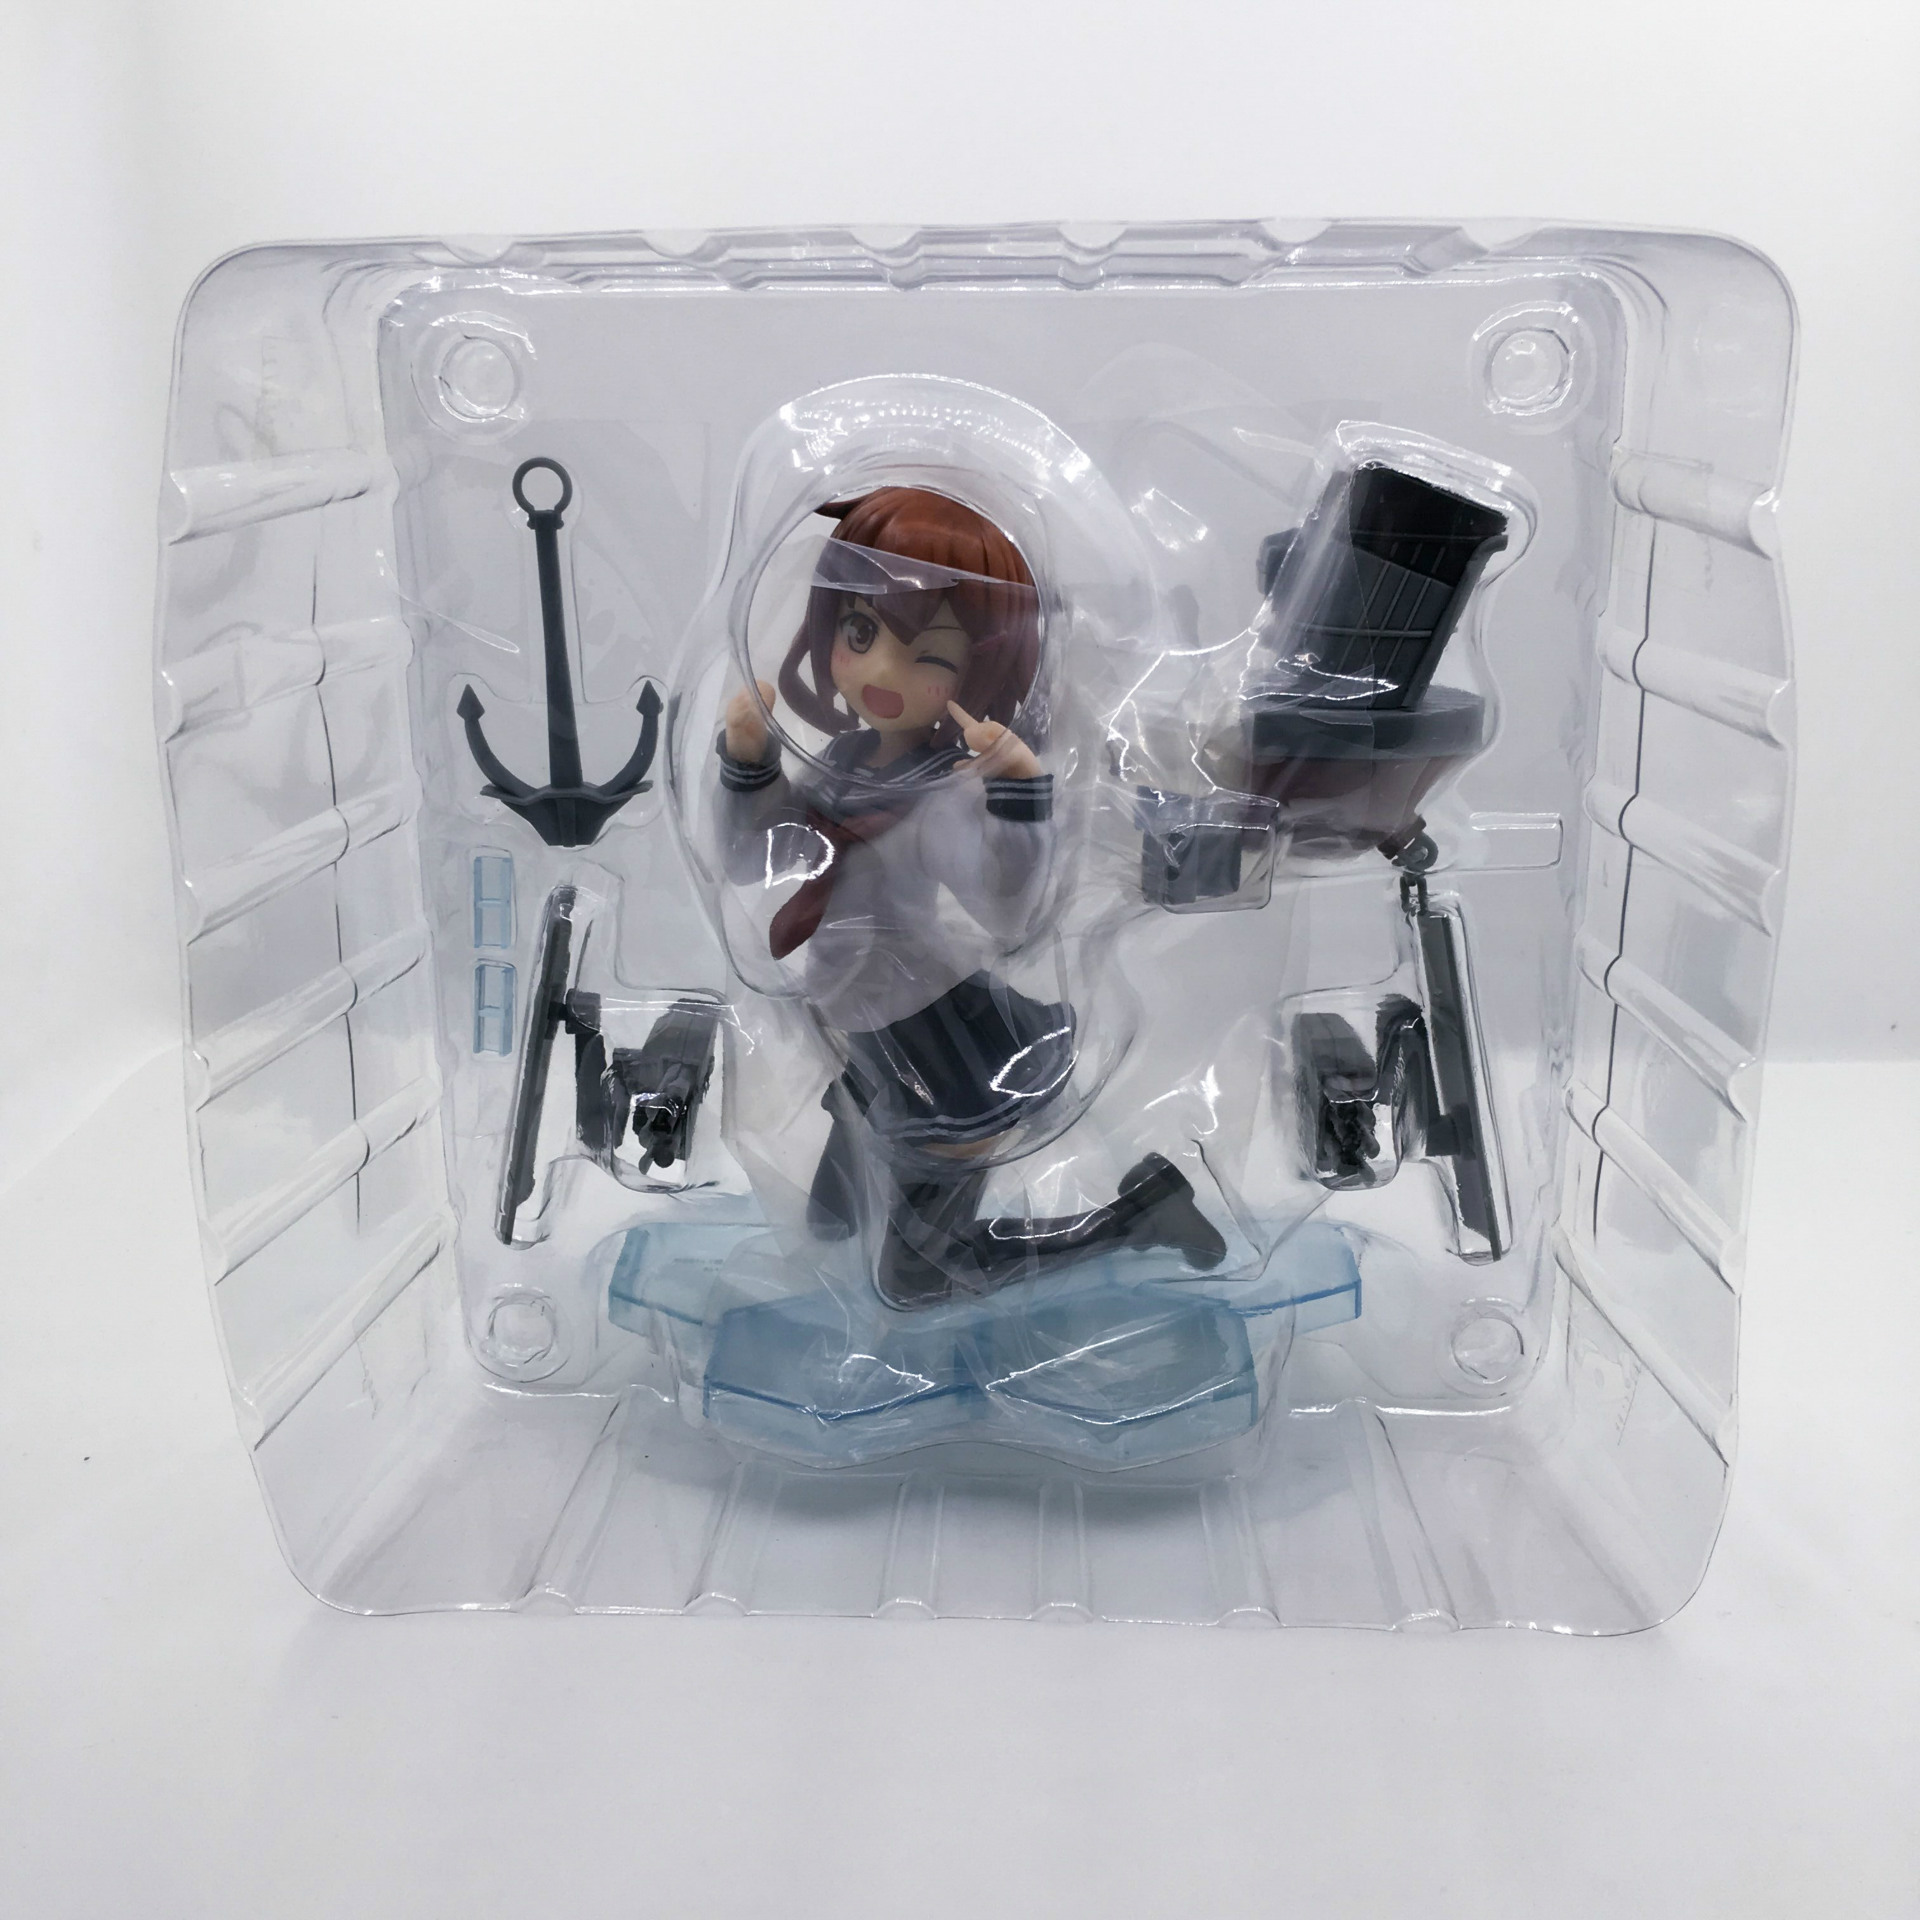 Kantai Collection Ikazuchi Ver. 18 Scale Pre-painted PVC Action Japanese Anime Figures Collectible Model Toys Doll 12CM New (4)